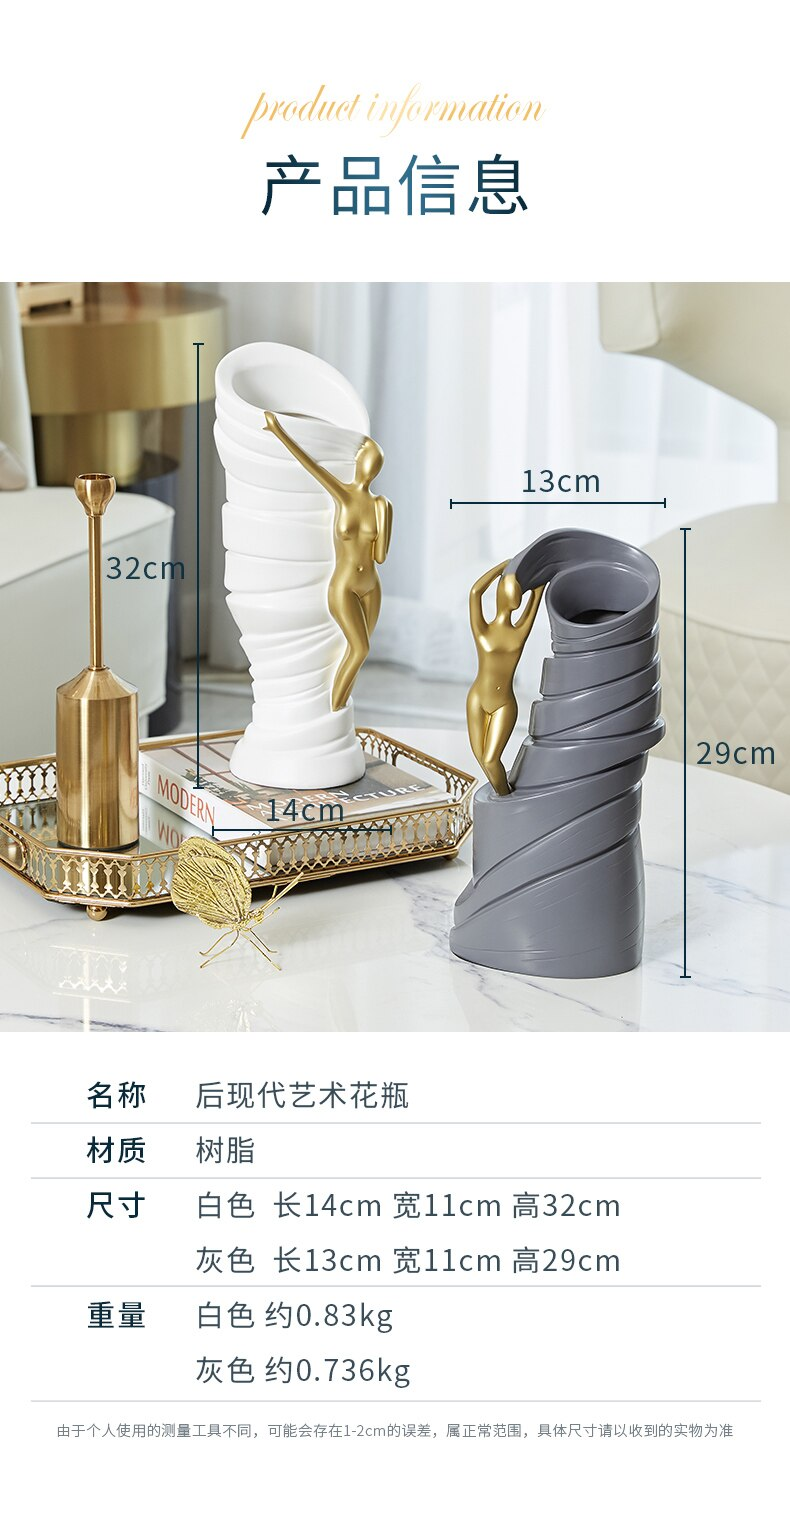 Resin Vase Abstract Golden Man Handicraft Furnishings Modern Home Decoration Accessories Art Character Flower Arrangement